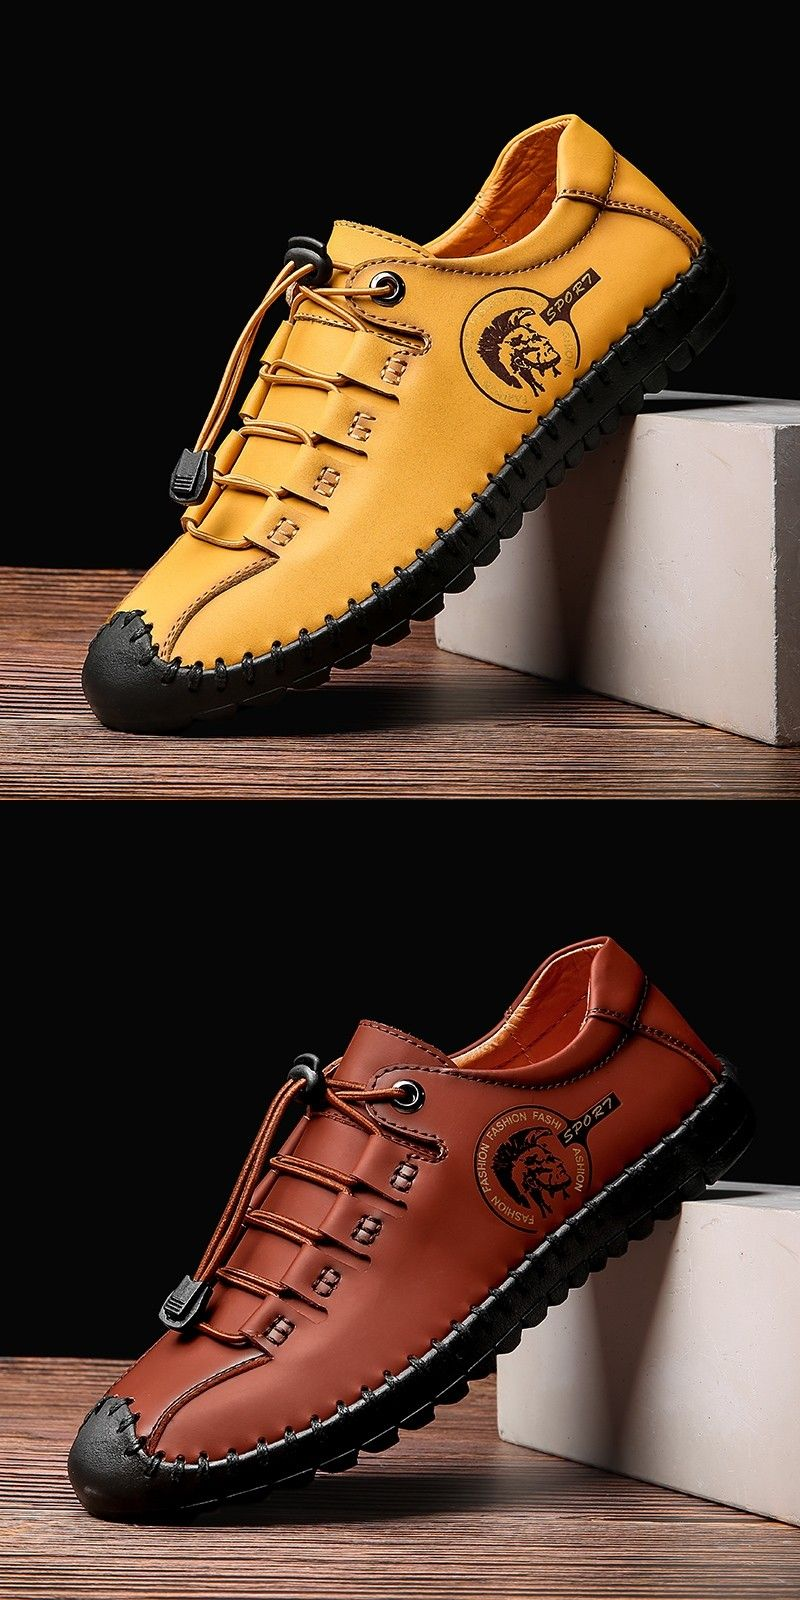 Prelesty Summer Men Dress Shoes Formal Handmade Comfortable Genuine Cow Leather Driving Cool